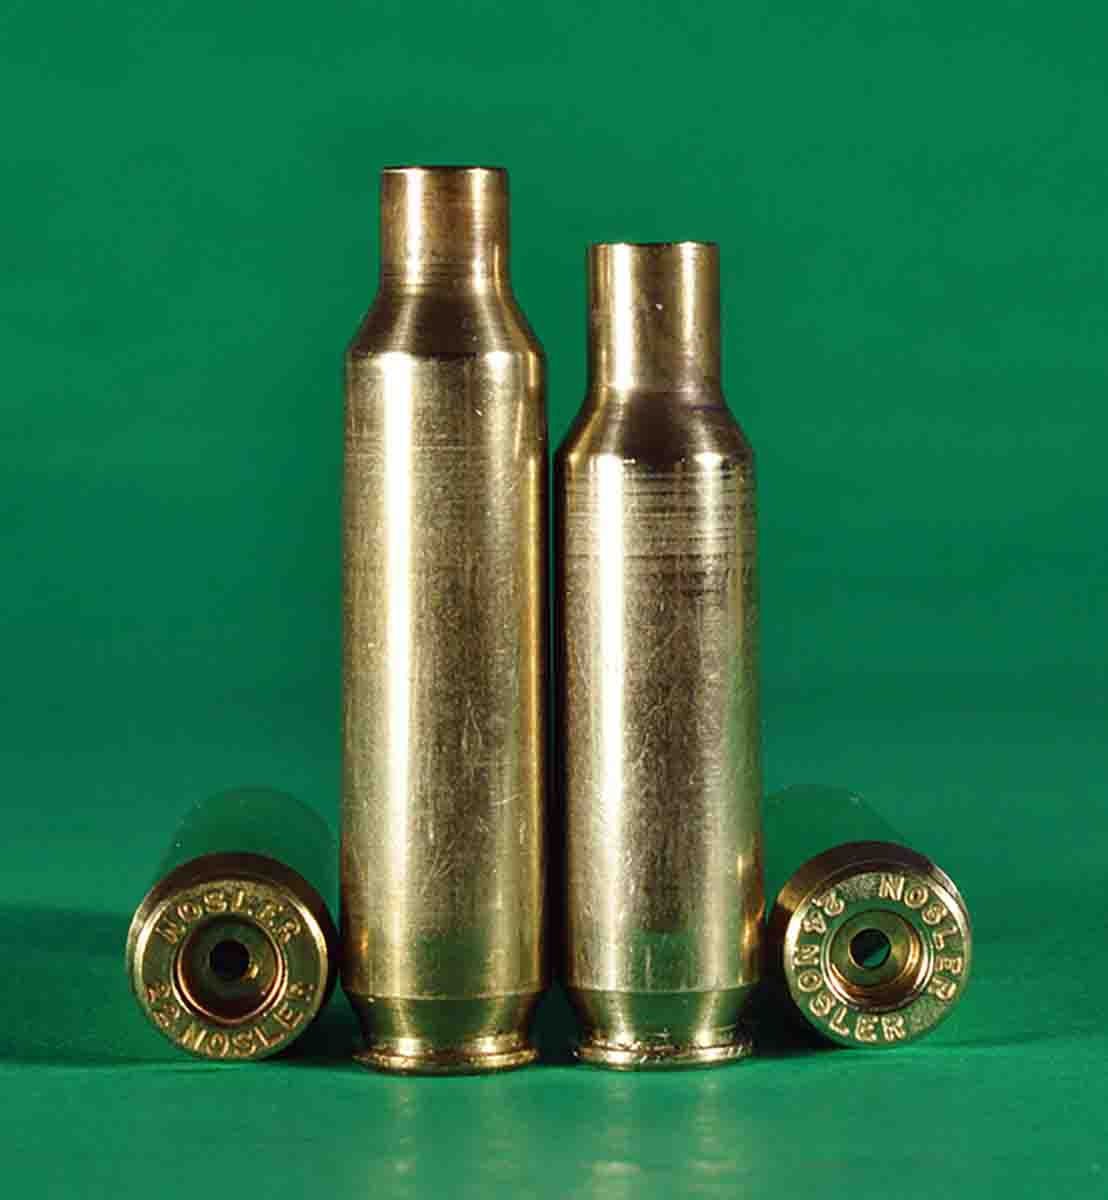 The .24 Nosler (right) was derived from the .22 Nosler.